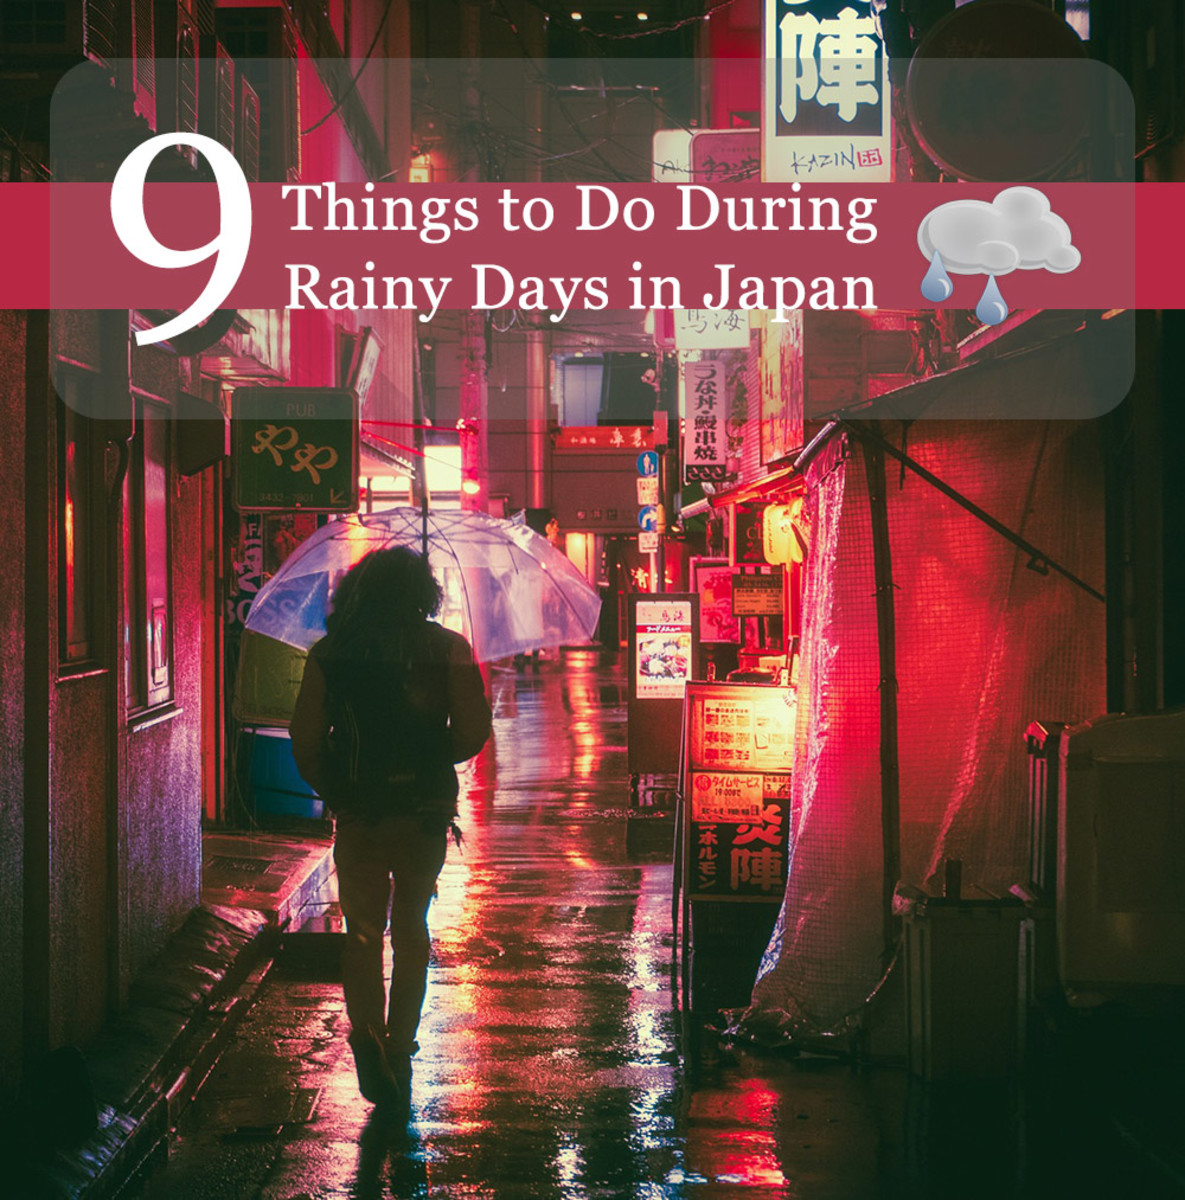 There are many fun things to do in Japan even when it rains the whole day.